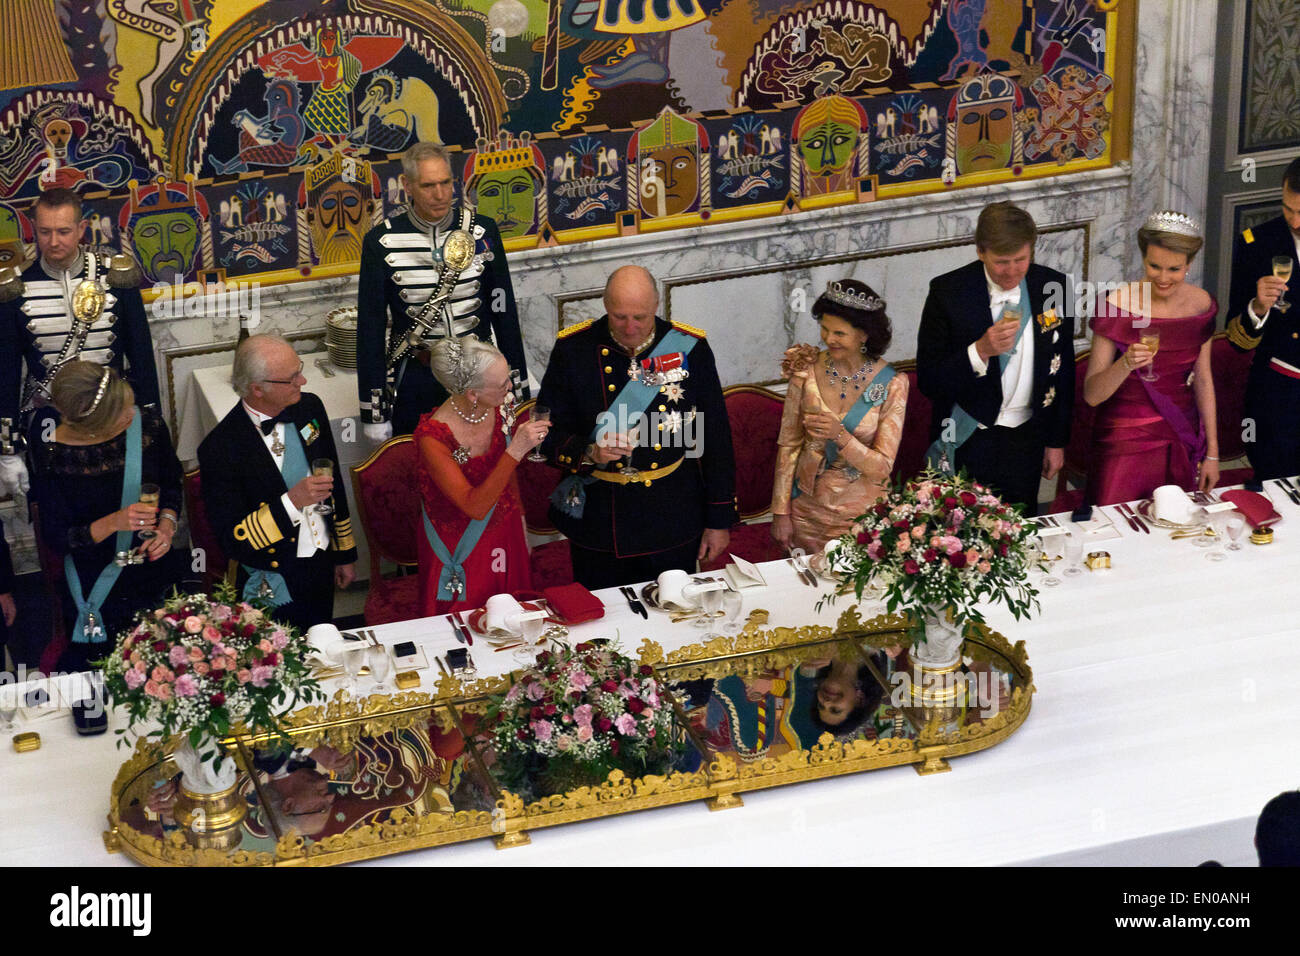 Copenhagen, Denmark, April15th, 2015. Danish Queen Margrethe opens the gala dinner at Christiansborg with a toast. - Stock Image